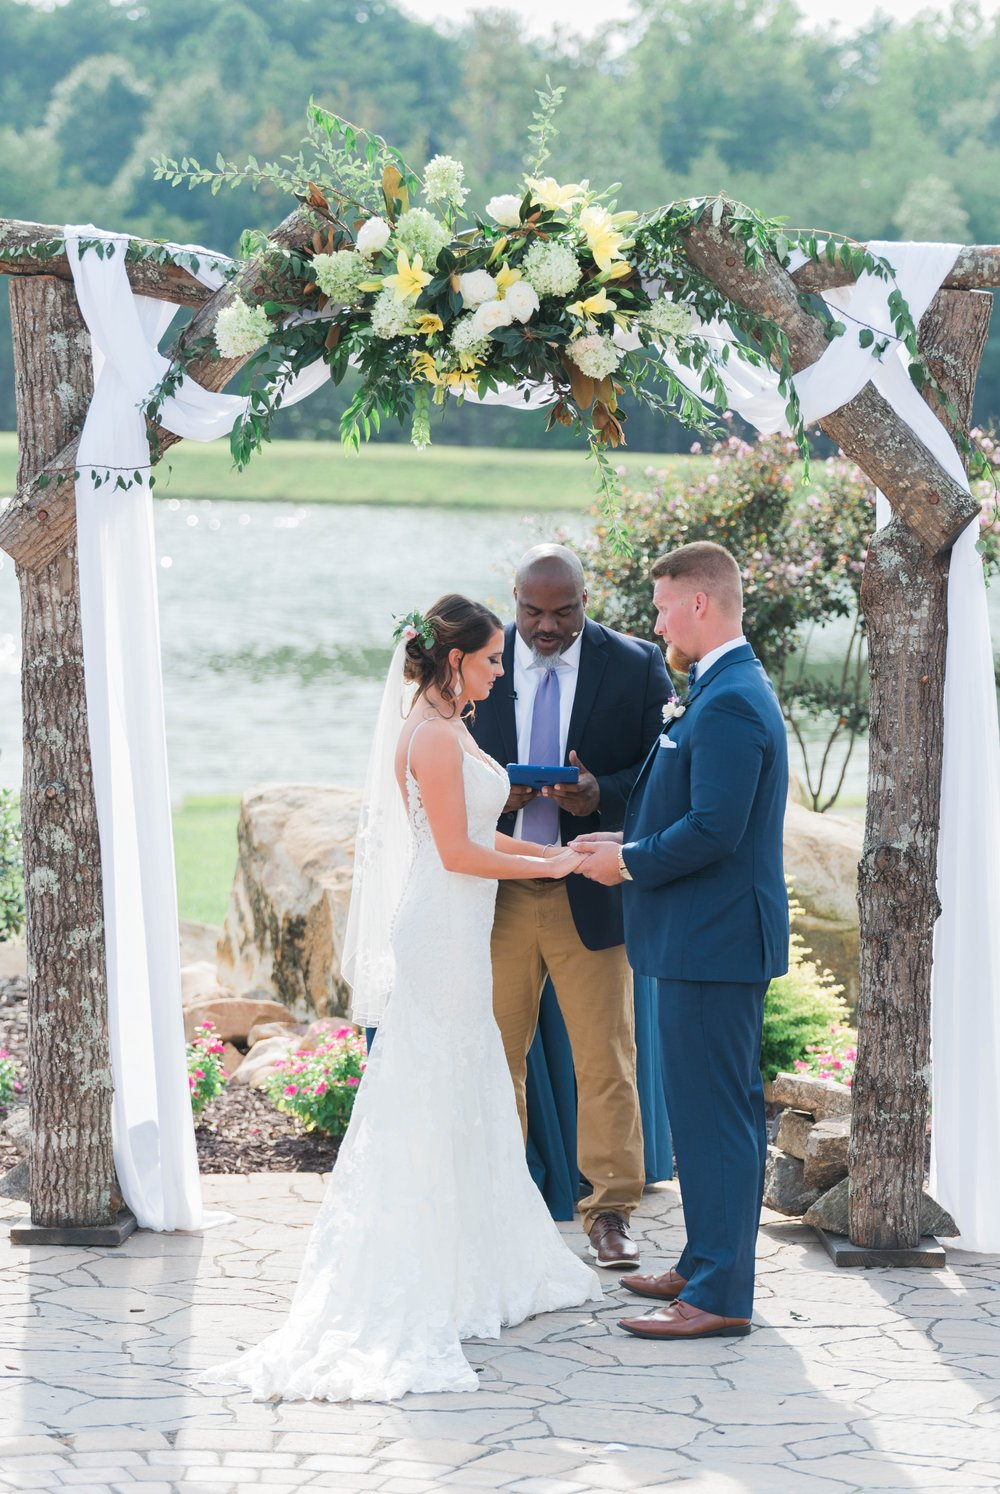 atkinson farms_VirginiaWeddingPhotographer_LynchburgWeddingPhotographer_DylanandLauren 5.jpg